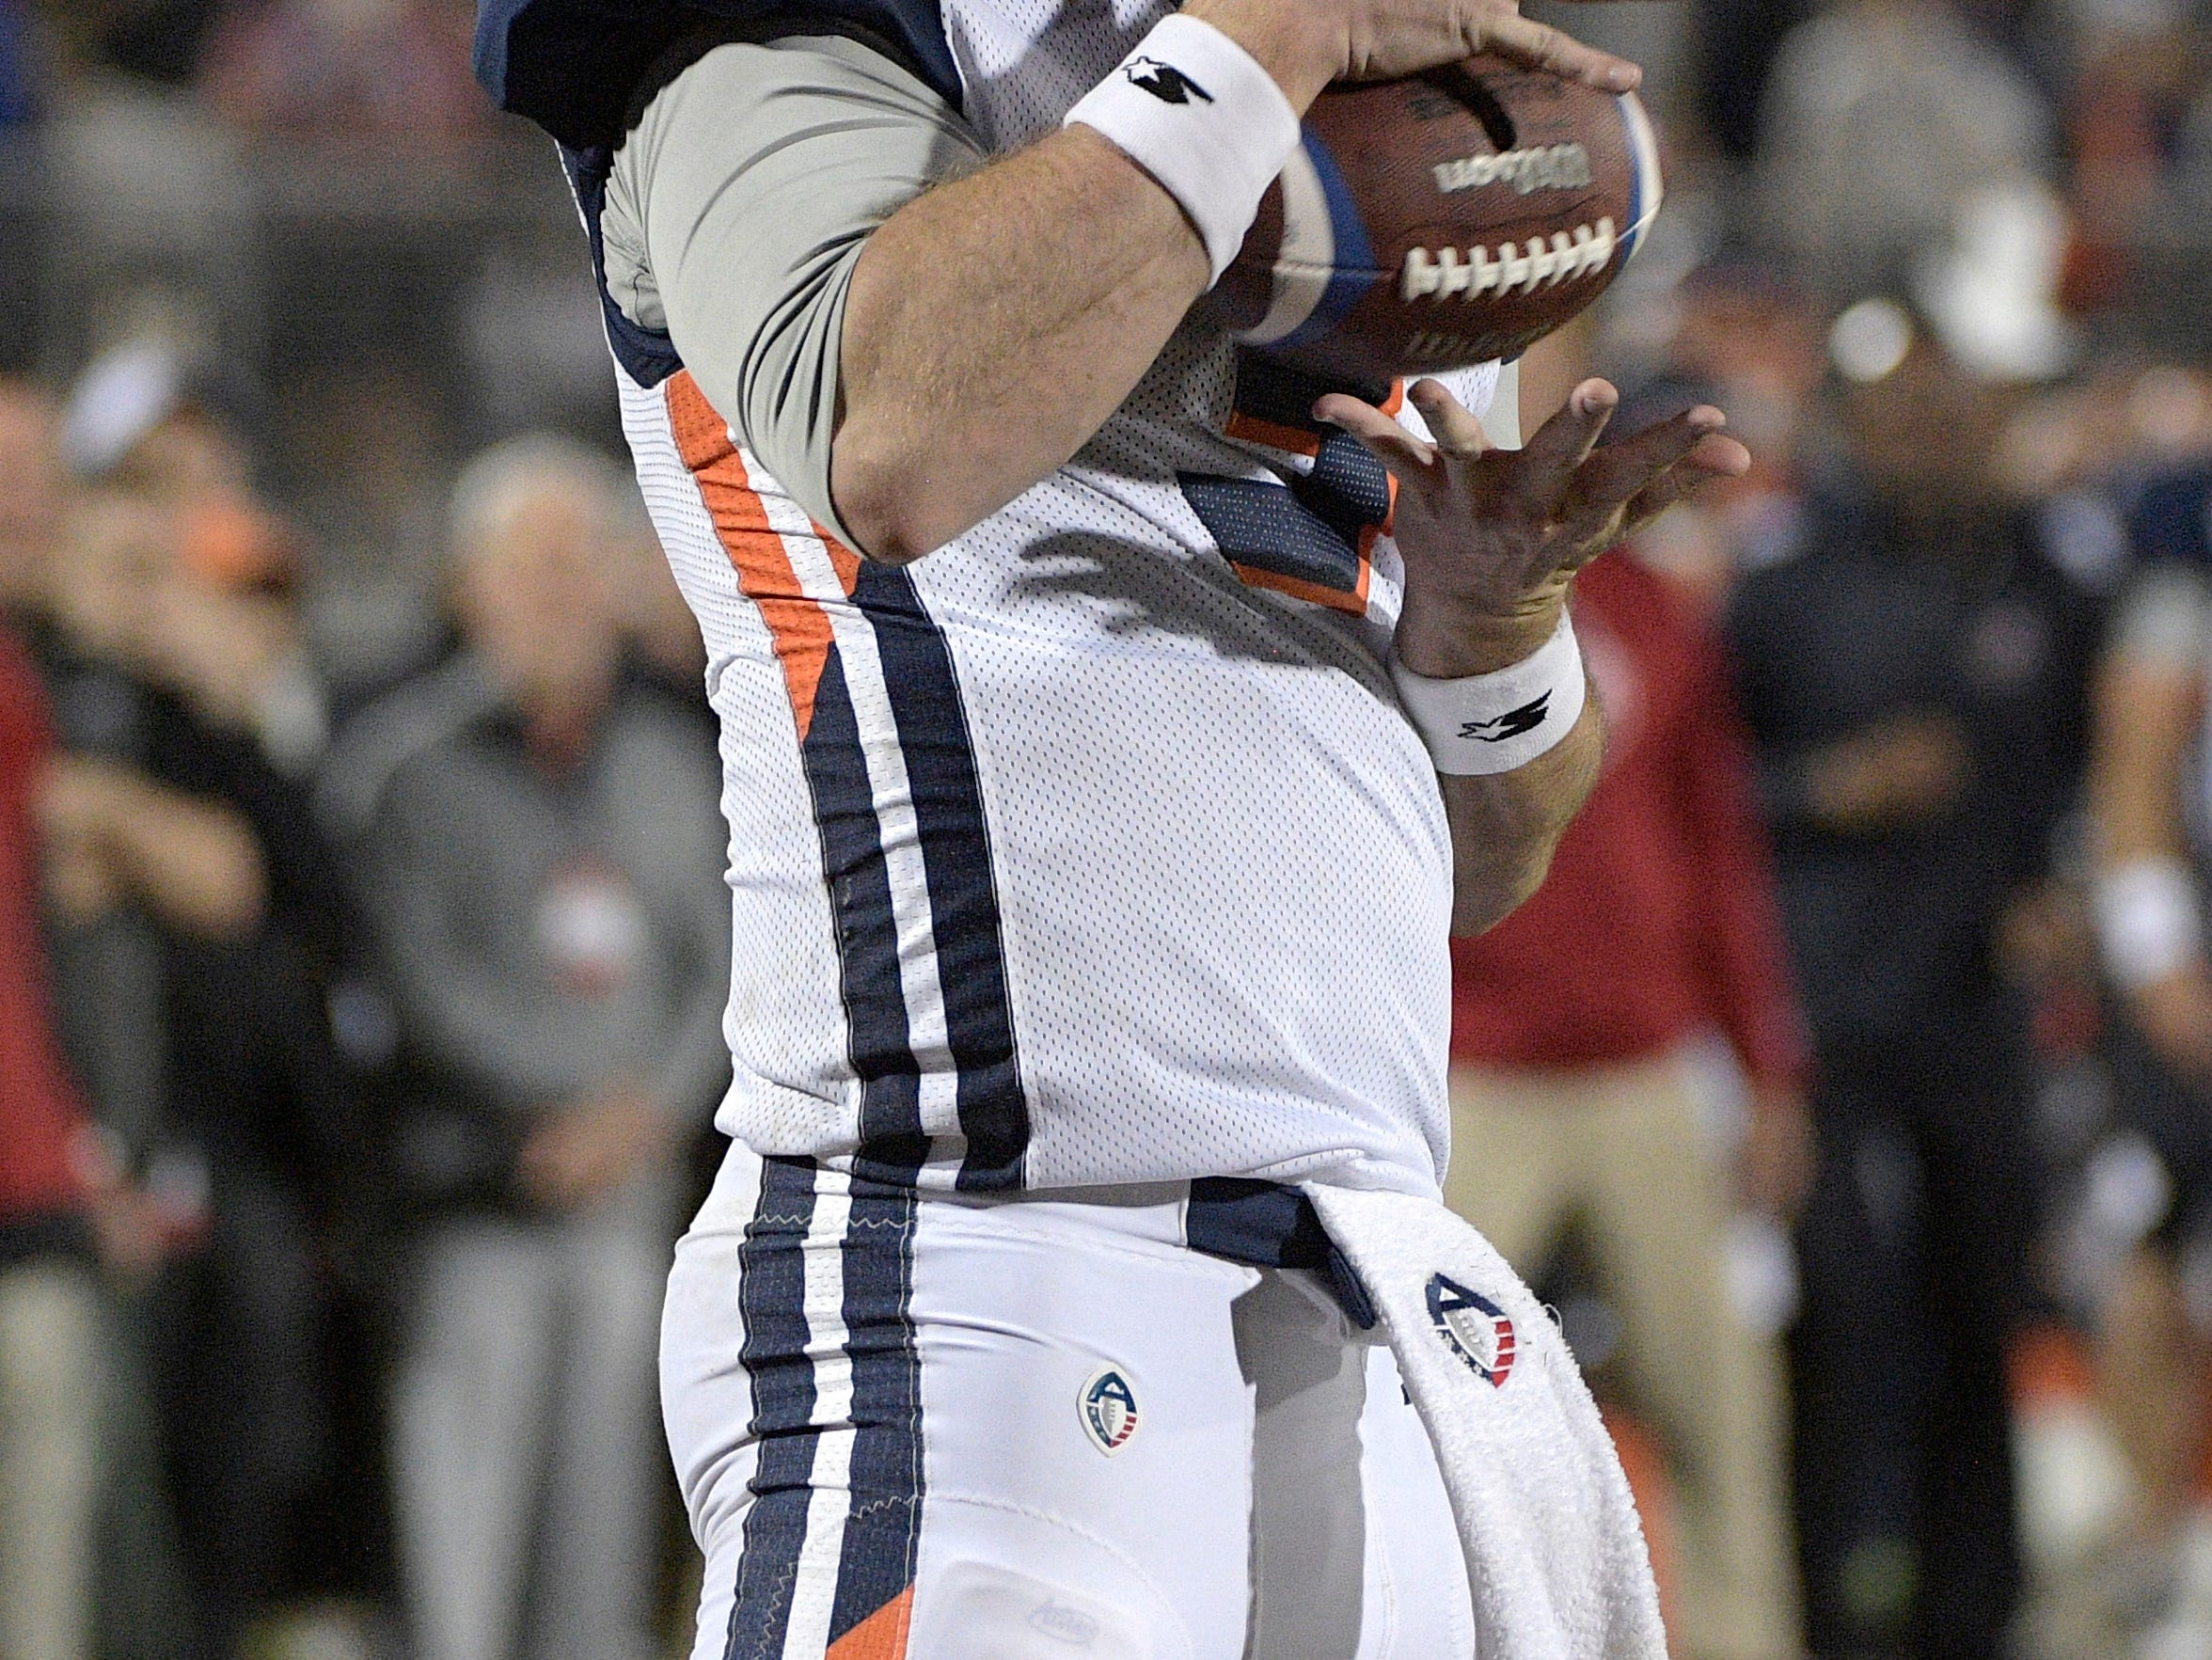 Orlando Apollos quarterback Garrett Gilbert catches a pass from receiver Jalin Marshall for a 5-yard touchdown during the first half of an Alliance of American Football game against the Atlanta Legends on Saturday, Feb. 9, 2019, in Orlando, Fla. (AP Photo/Phelan M. Ebenhack)